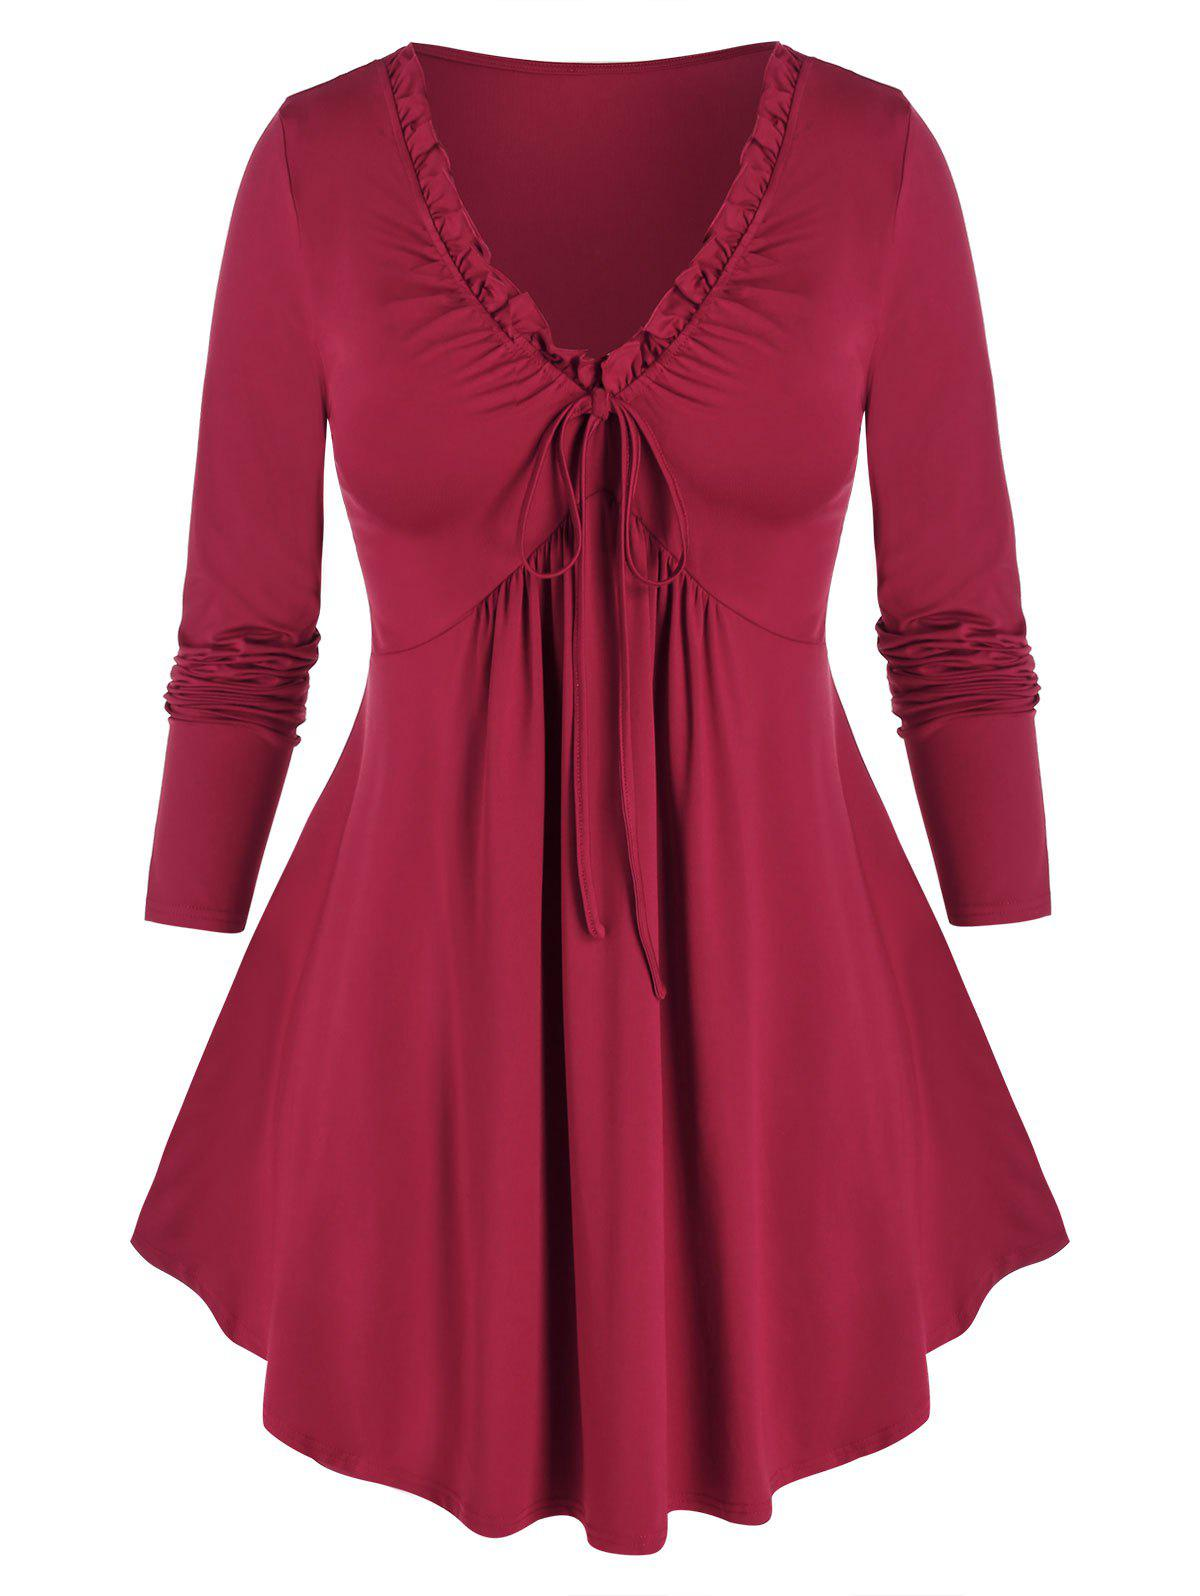 Plus Size Ruffle Tied T Shirt - RED WINE L